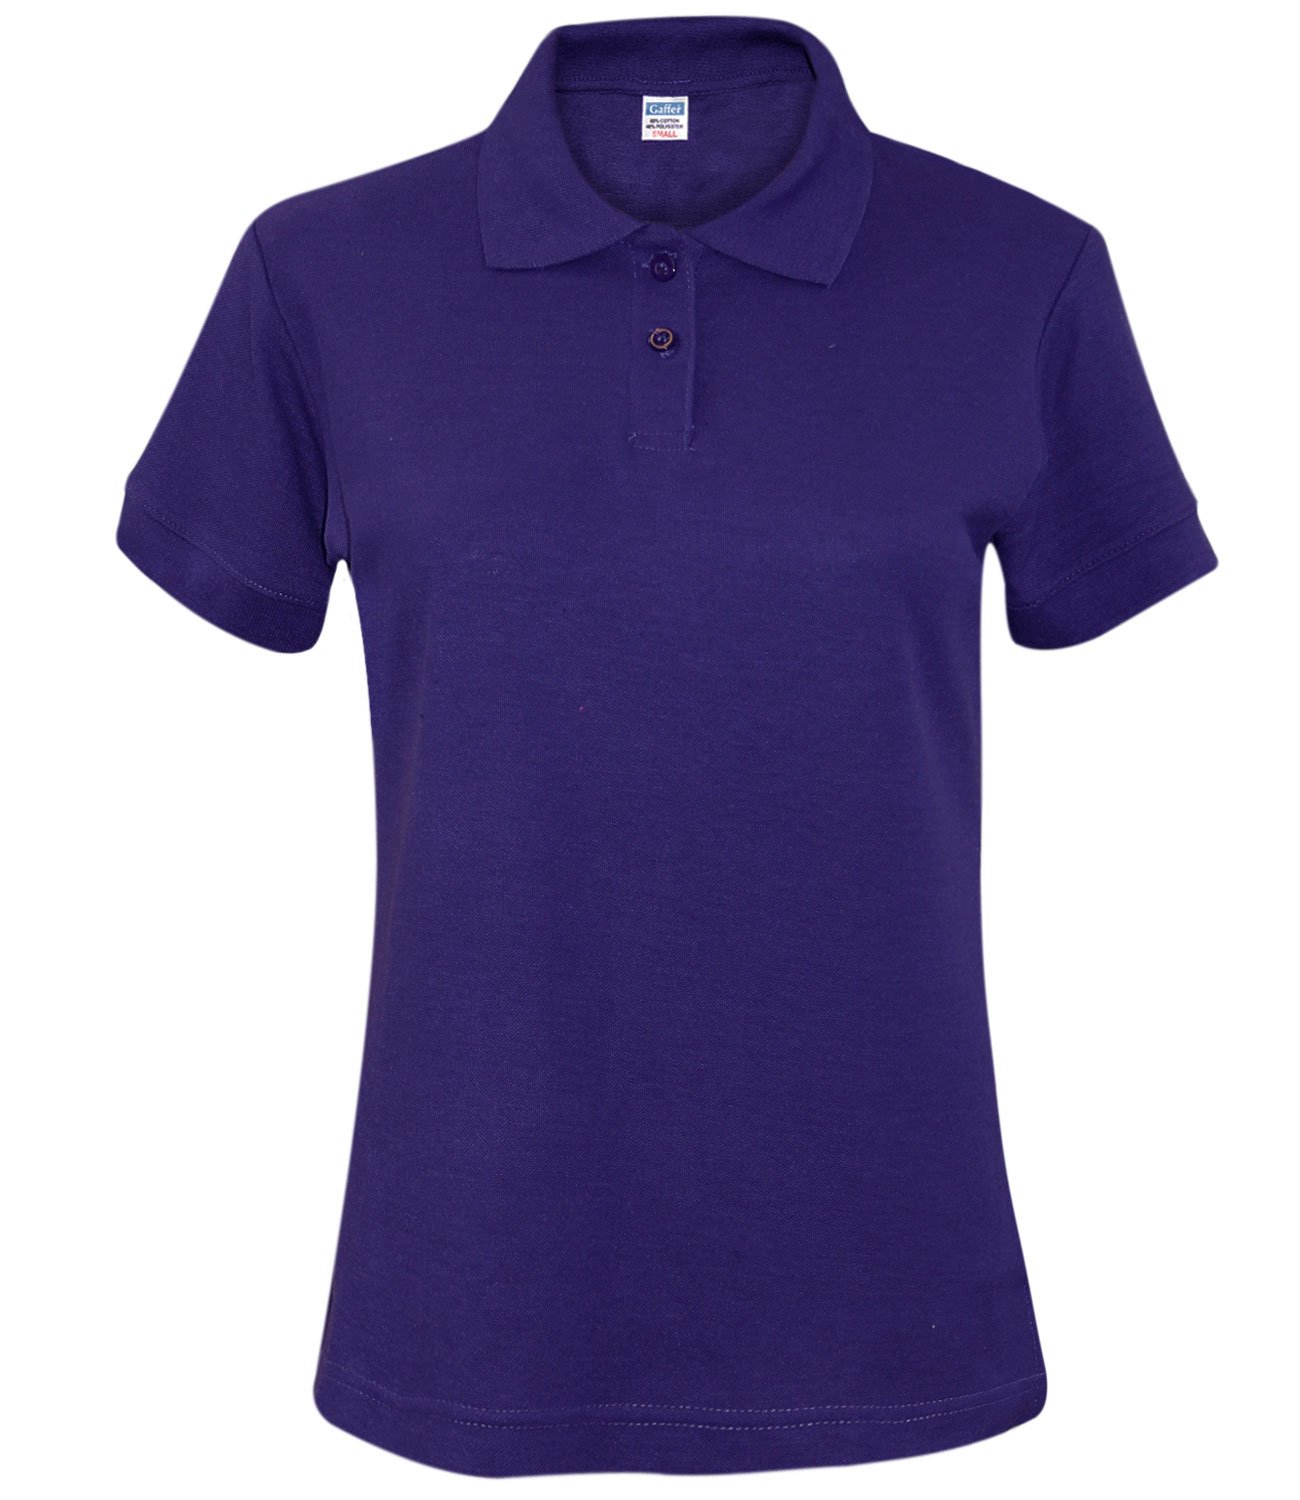 New Ladies Pique Polo Shirt Pk Tee Collar Neck Plus Sizes